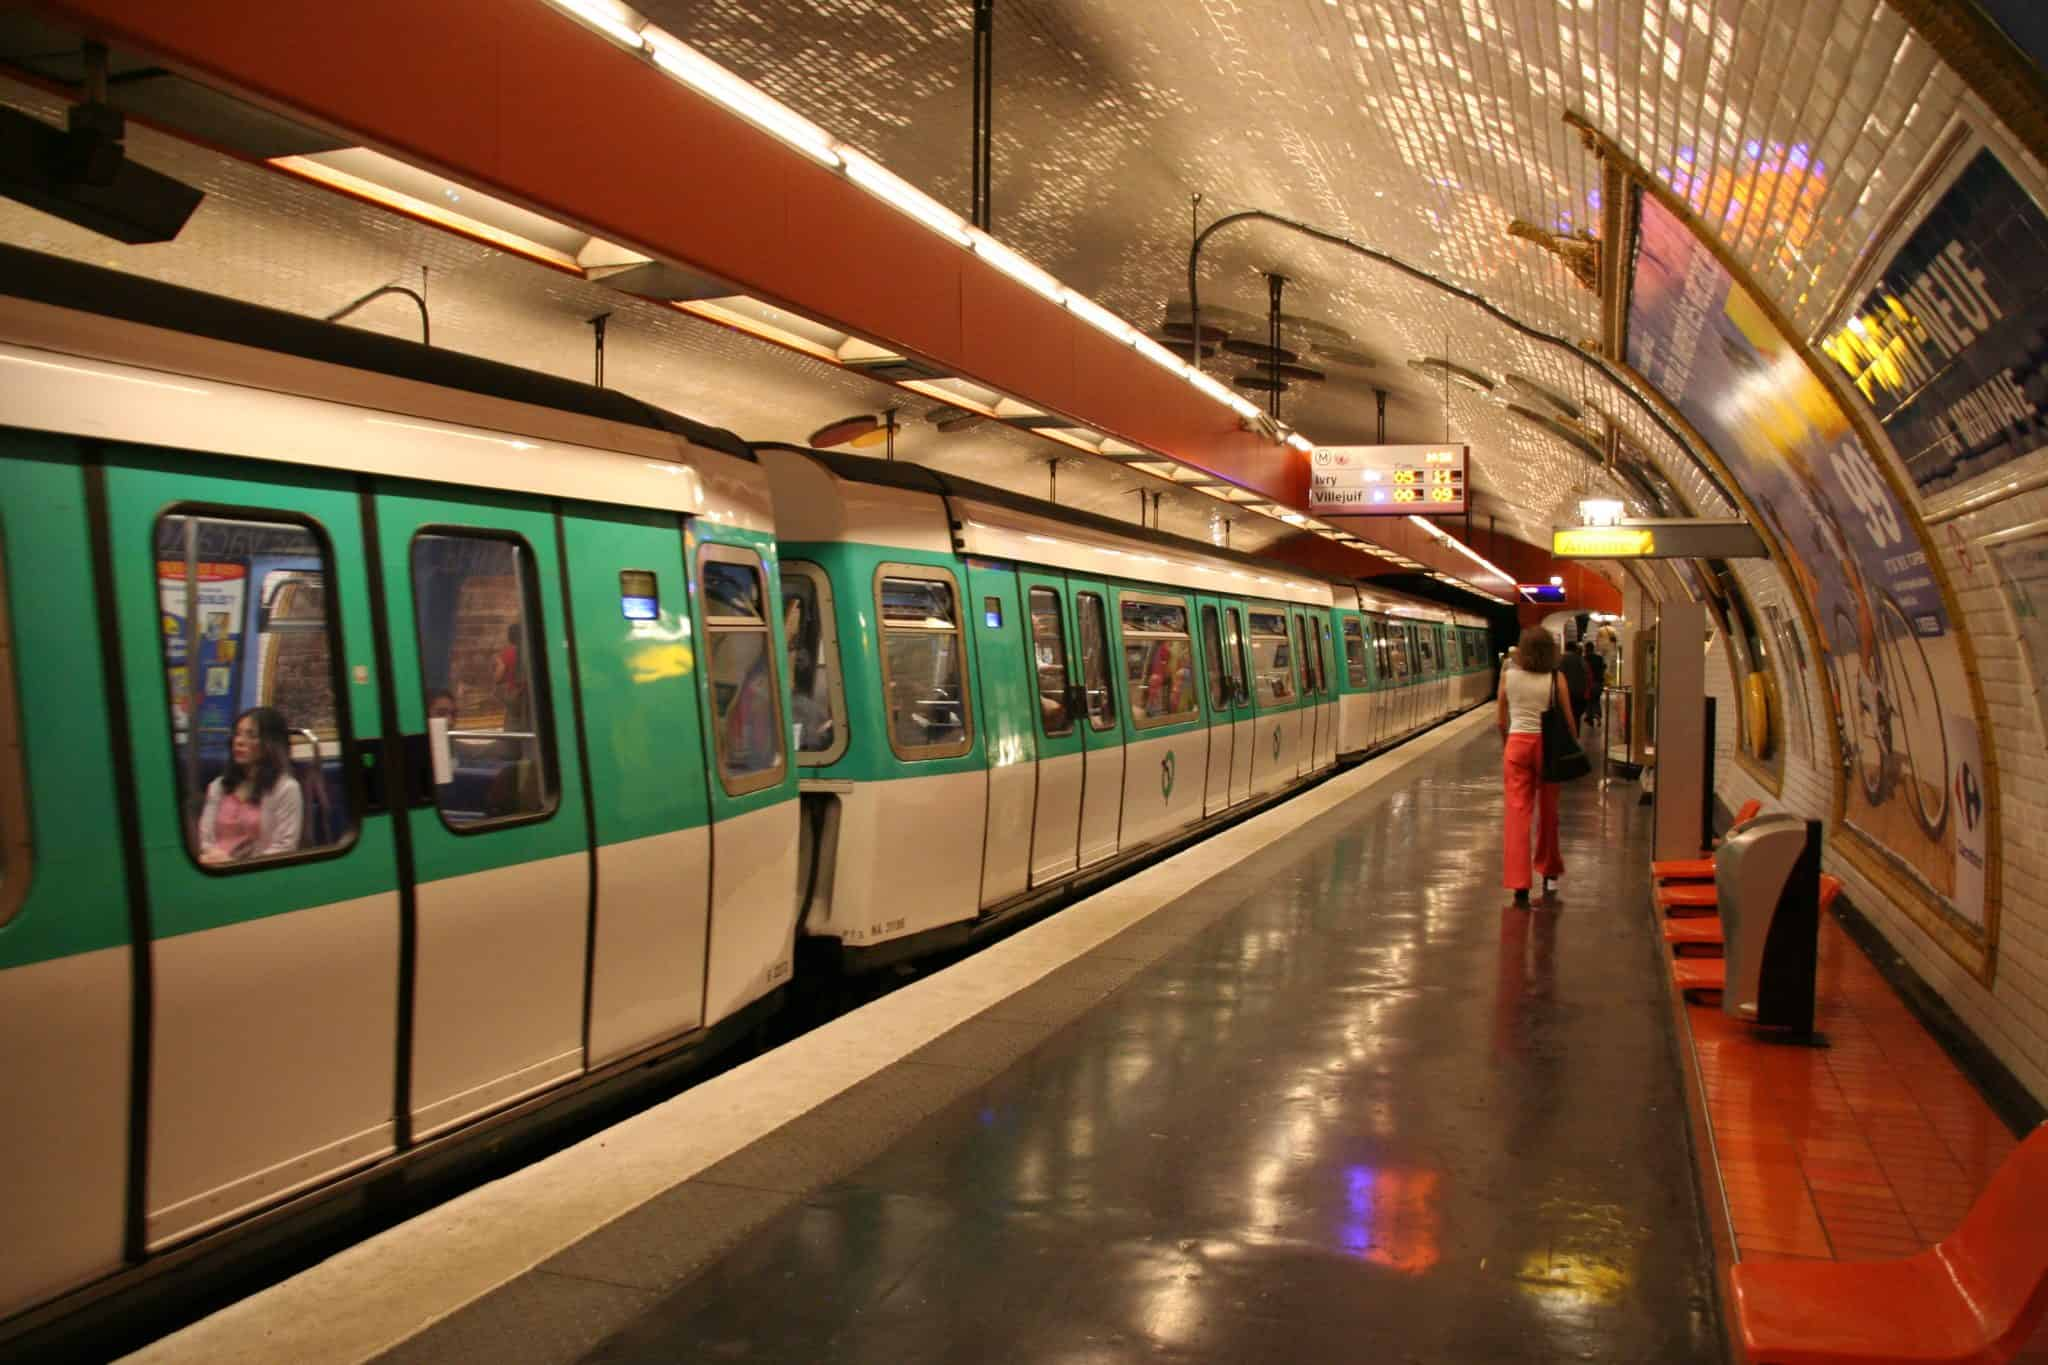 The Metro in Paris